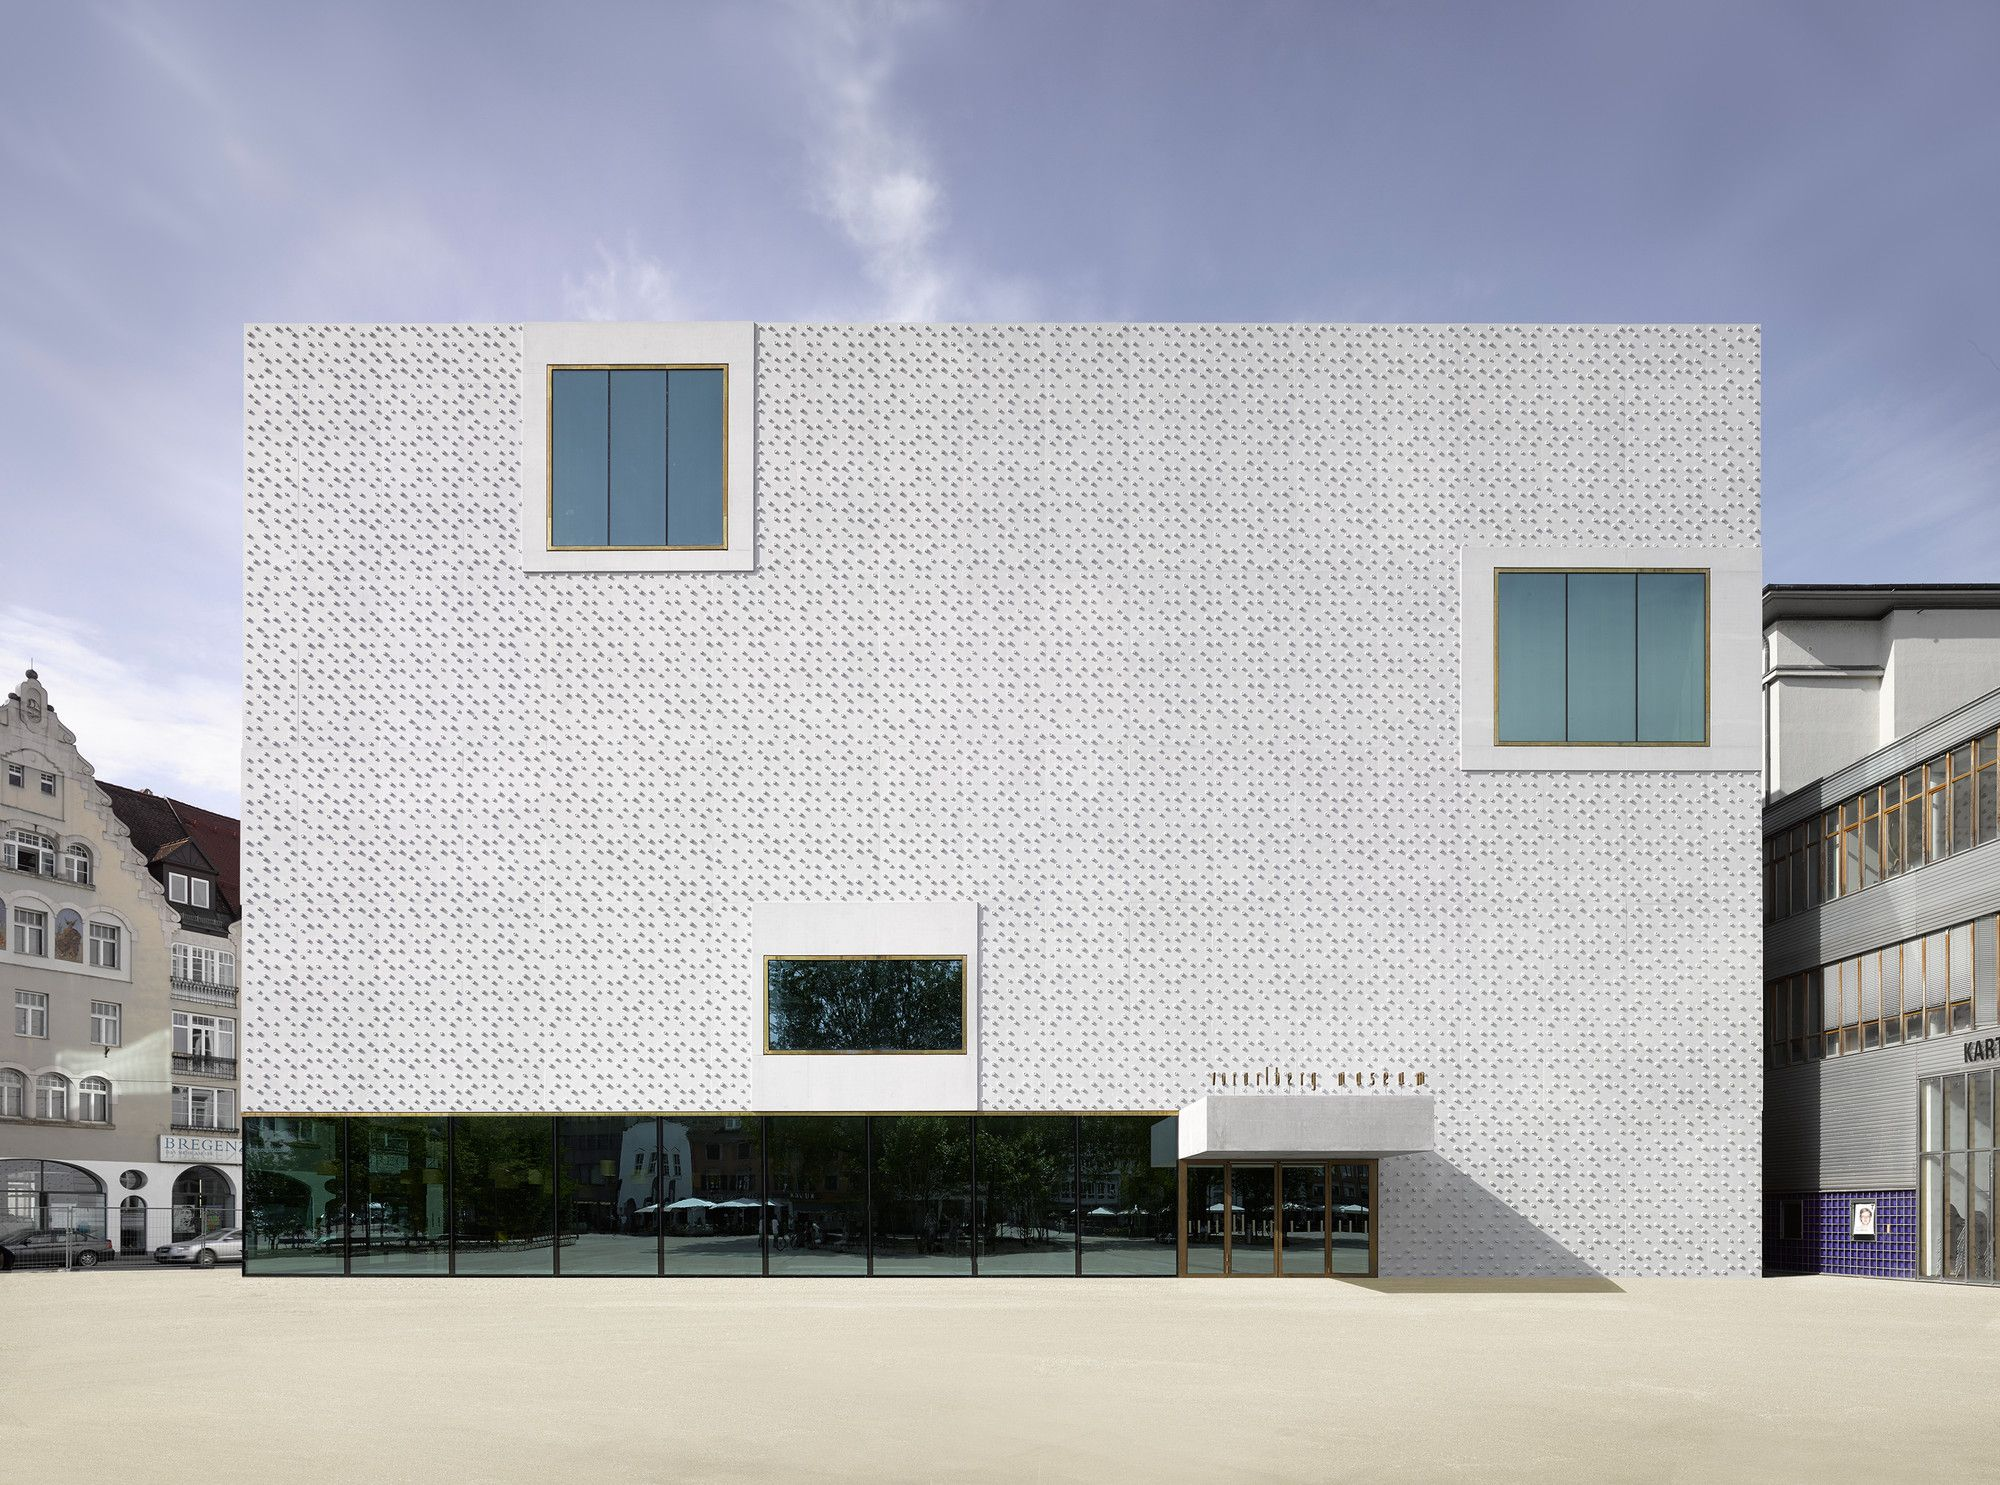 259 best Architecture images on Pinterest | Architecture ...